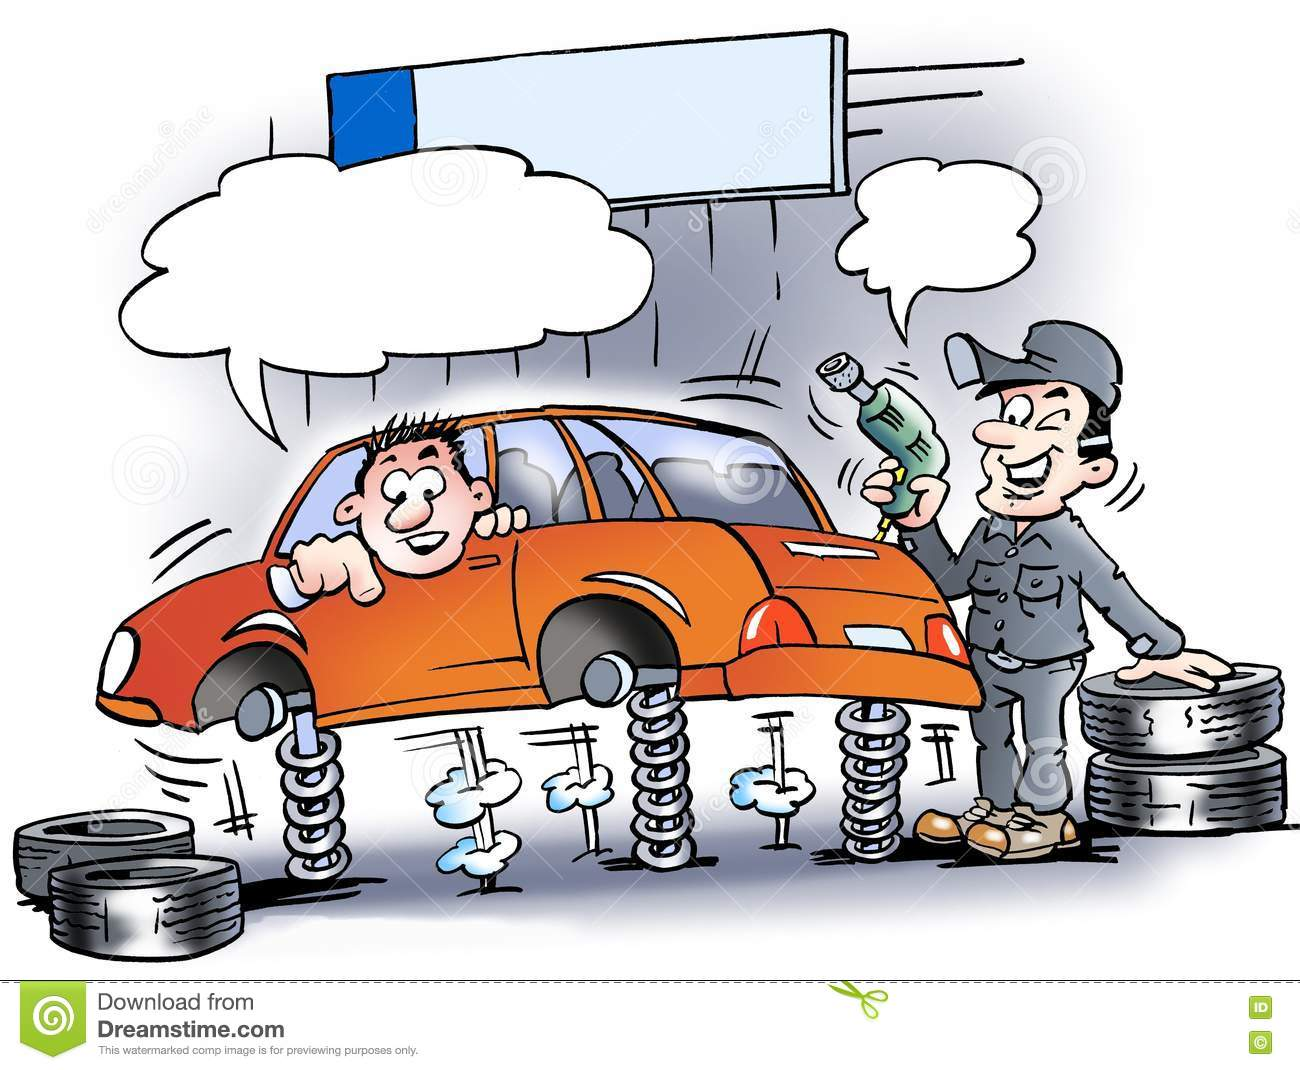 Cartoon illustration of a mechanic who testing the shock absorbers